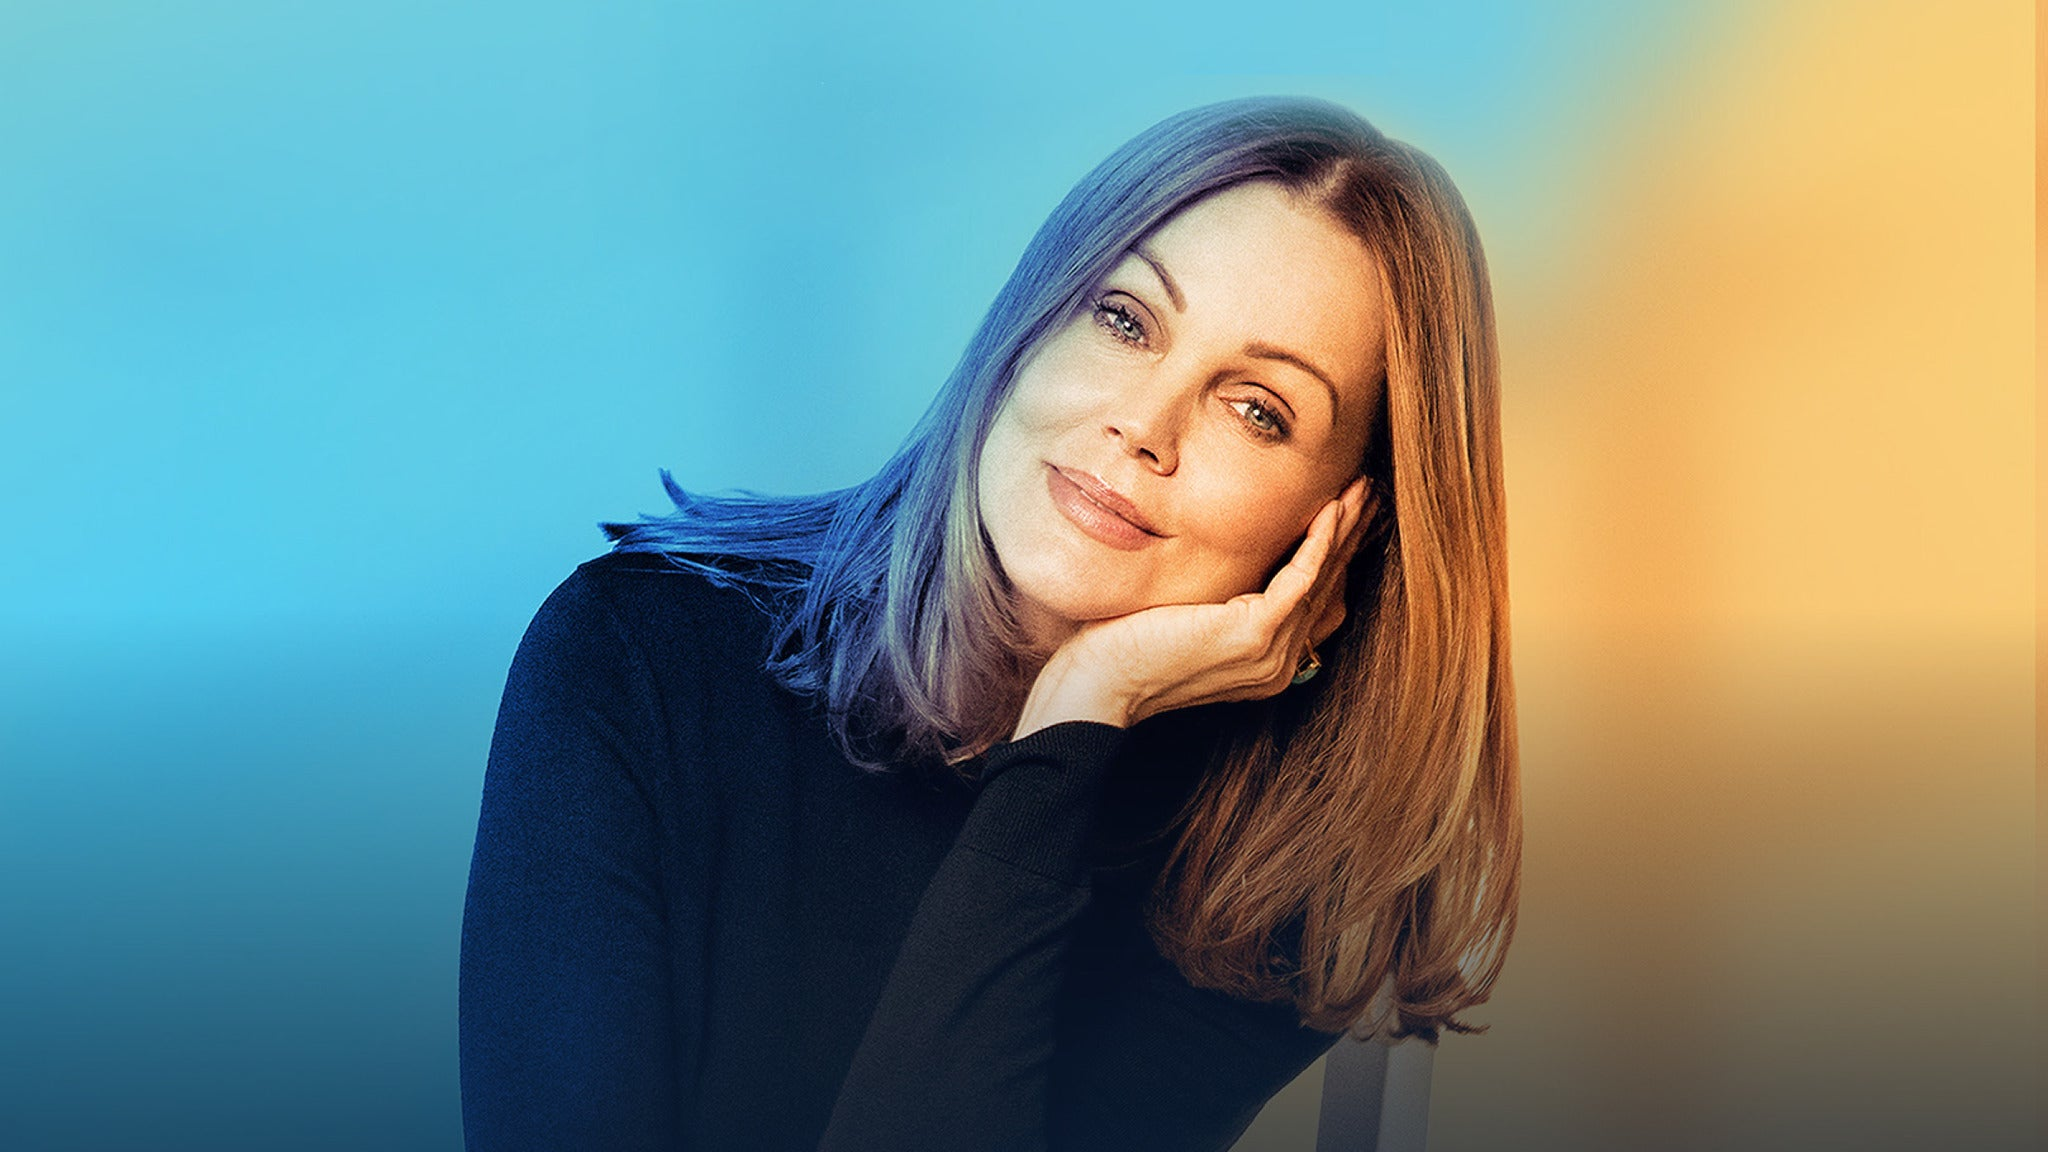 Image used with permission from Ticketmaster | Belinda Carlisle 2022 Tour tickets